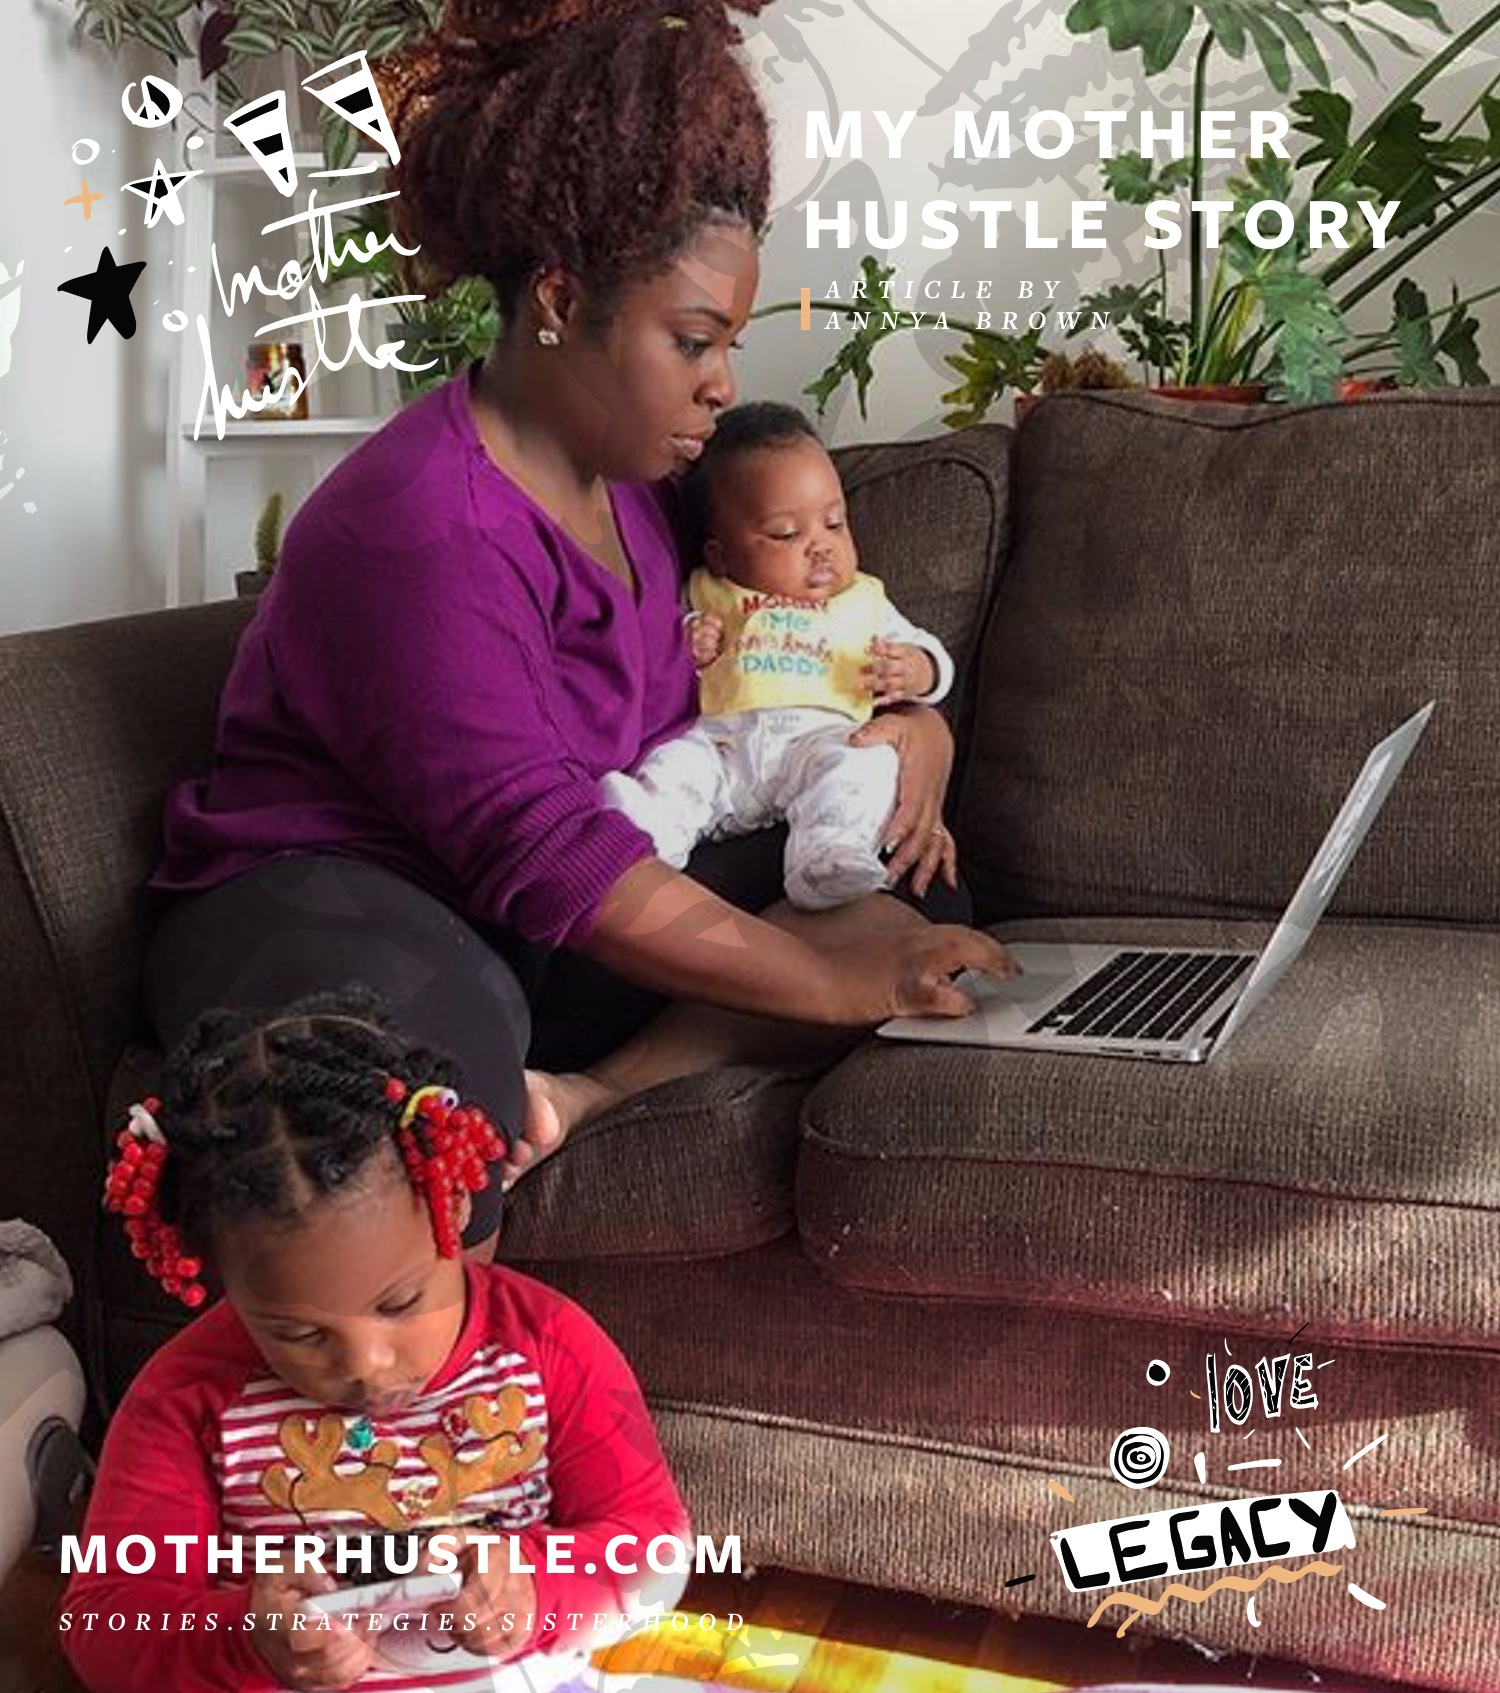 MyMotherHustle Story - Annya Brown